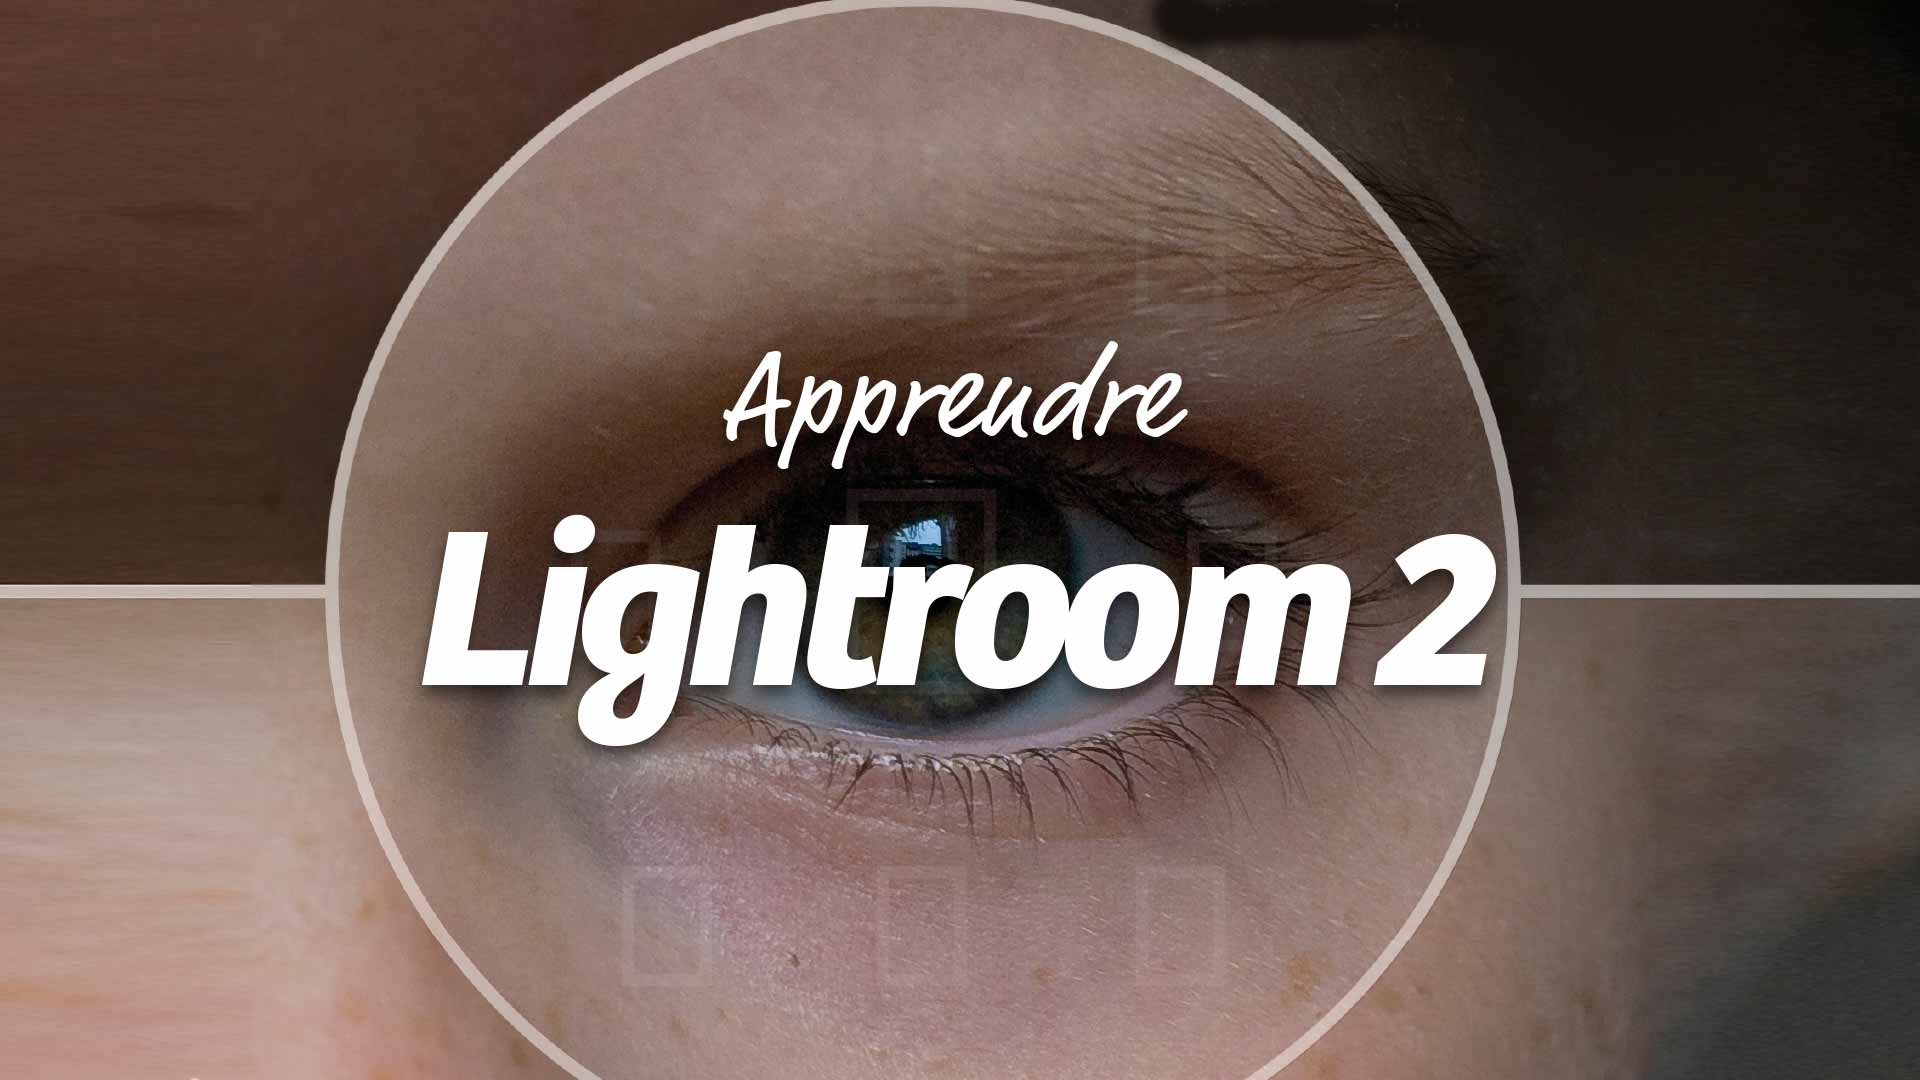 Apprendre Adobe - Photoshop Lightroom 2